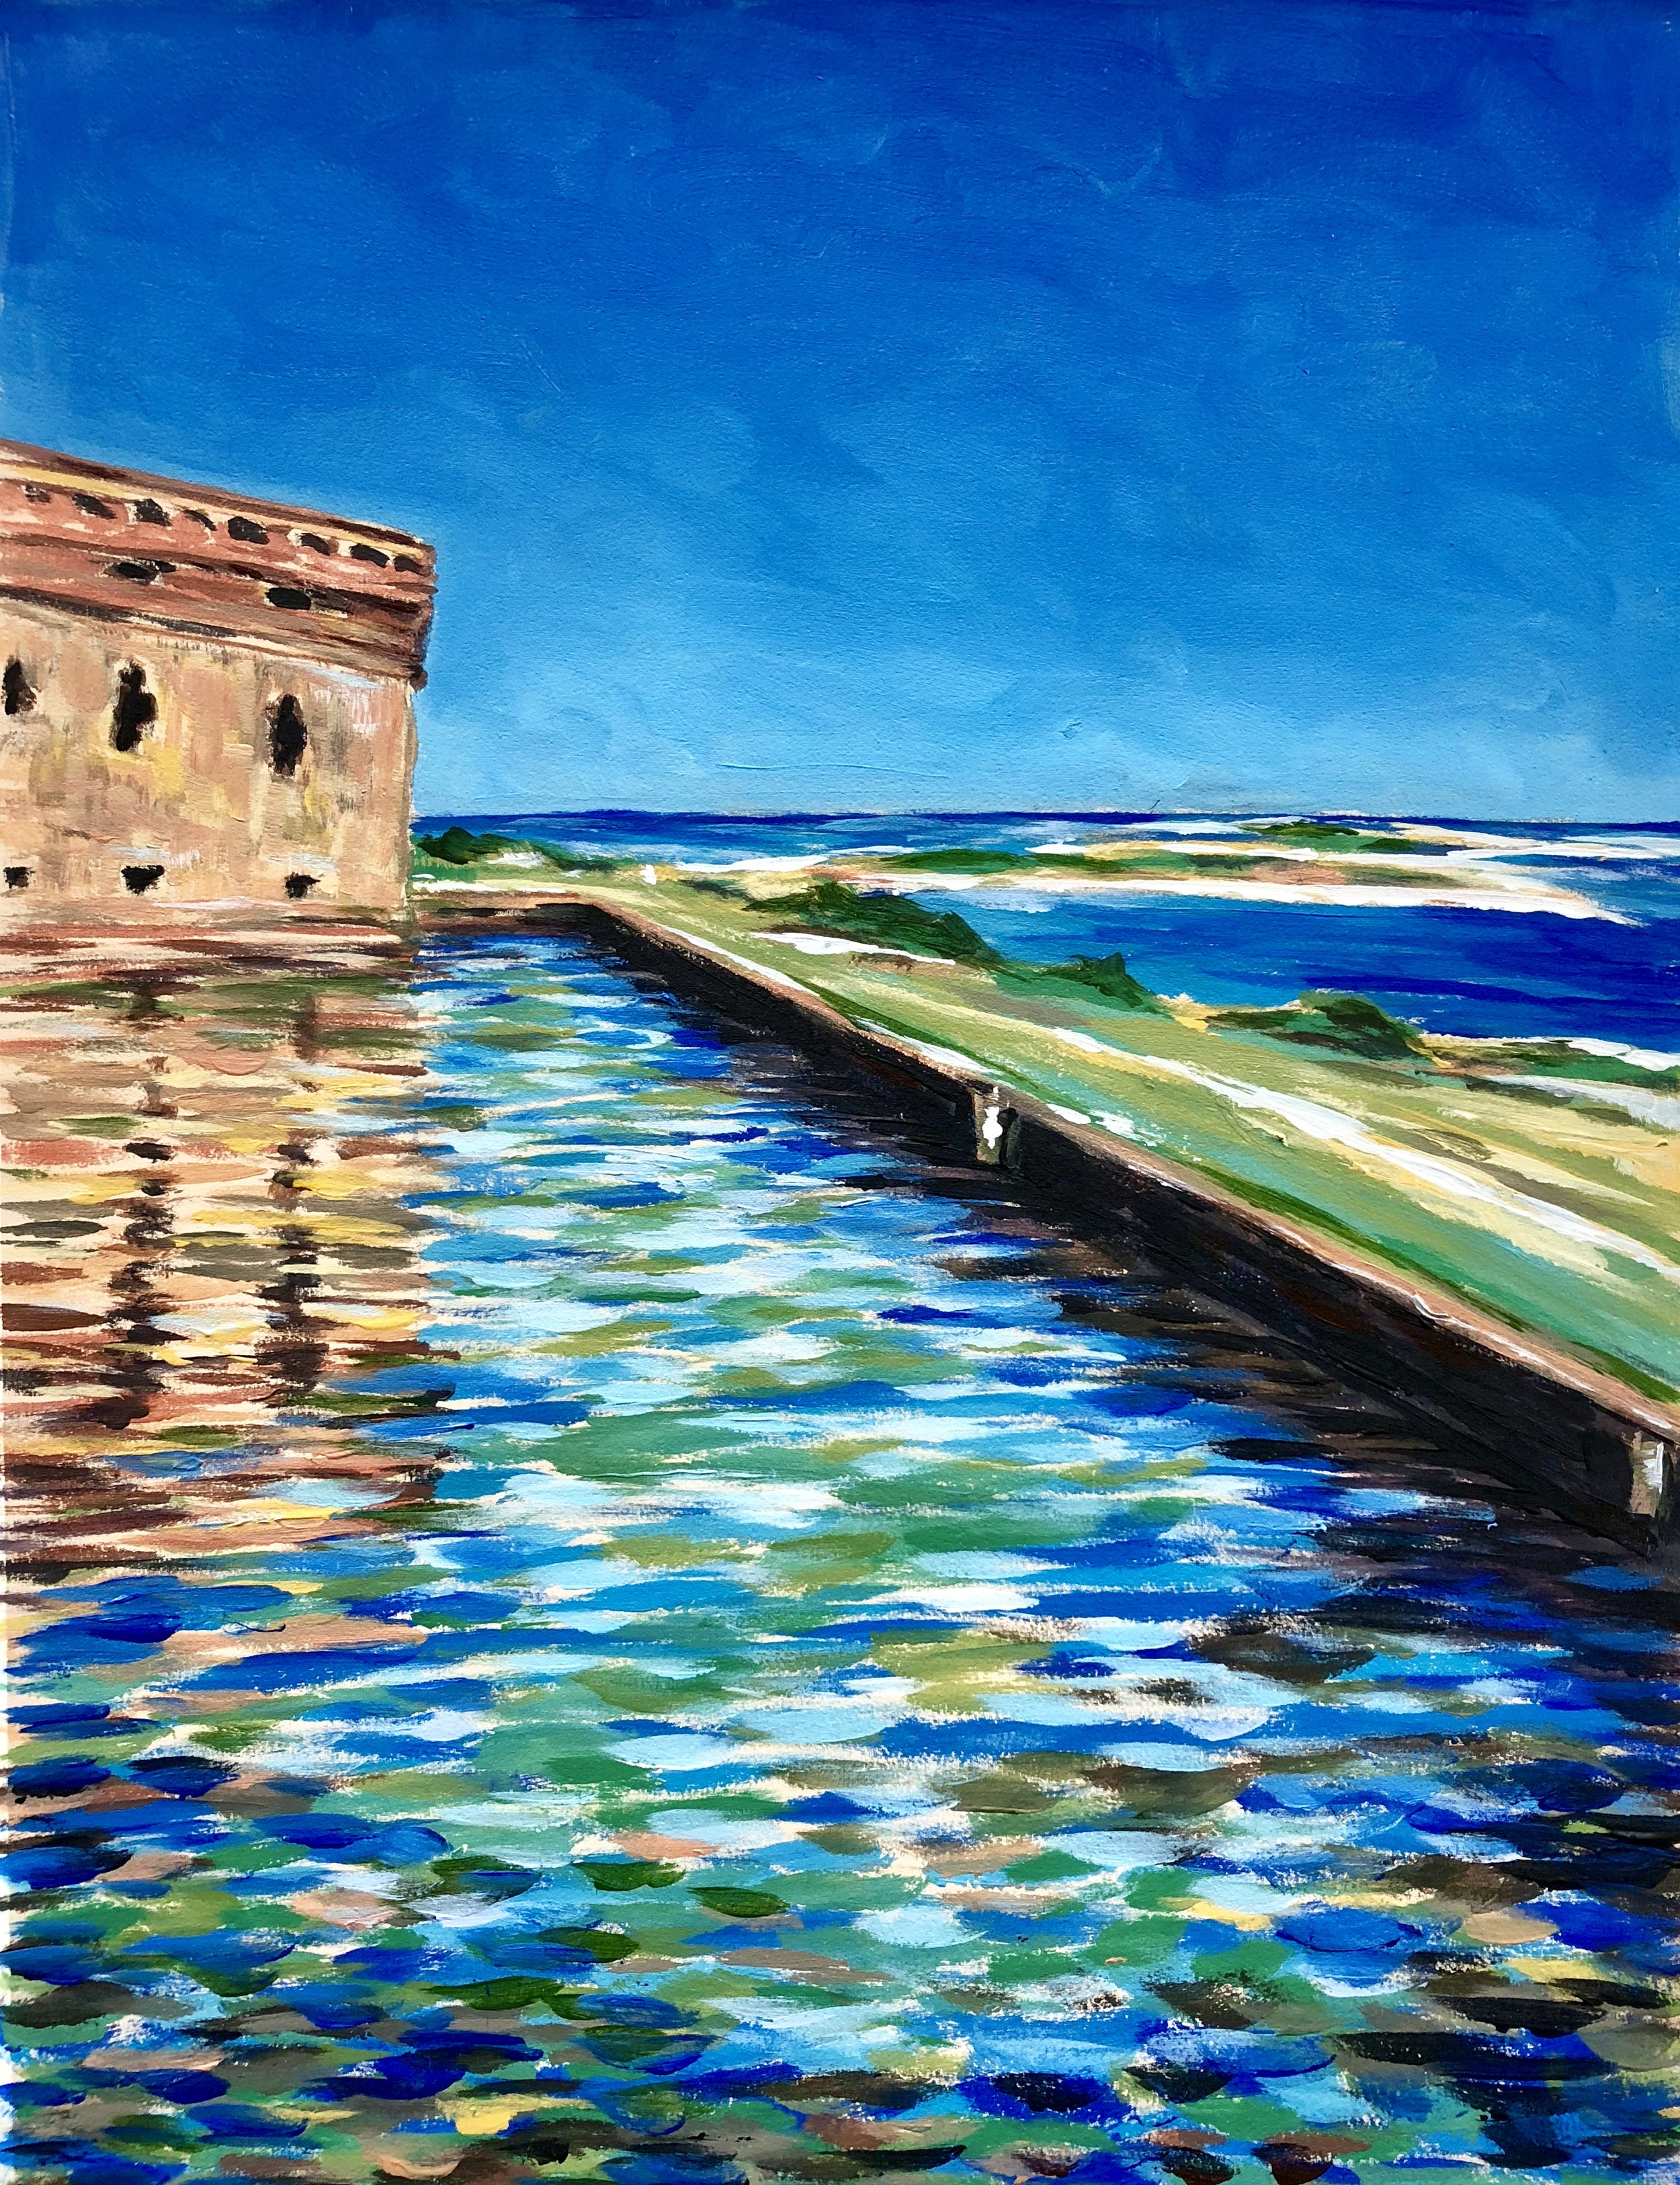 Reflections - Dry Tortuga National Park - acrylic